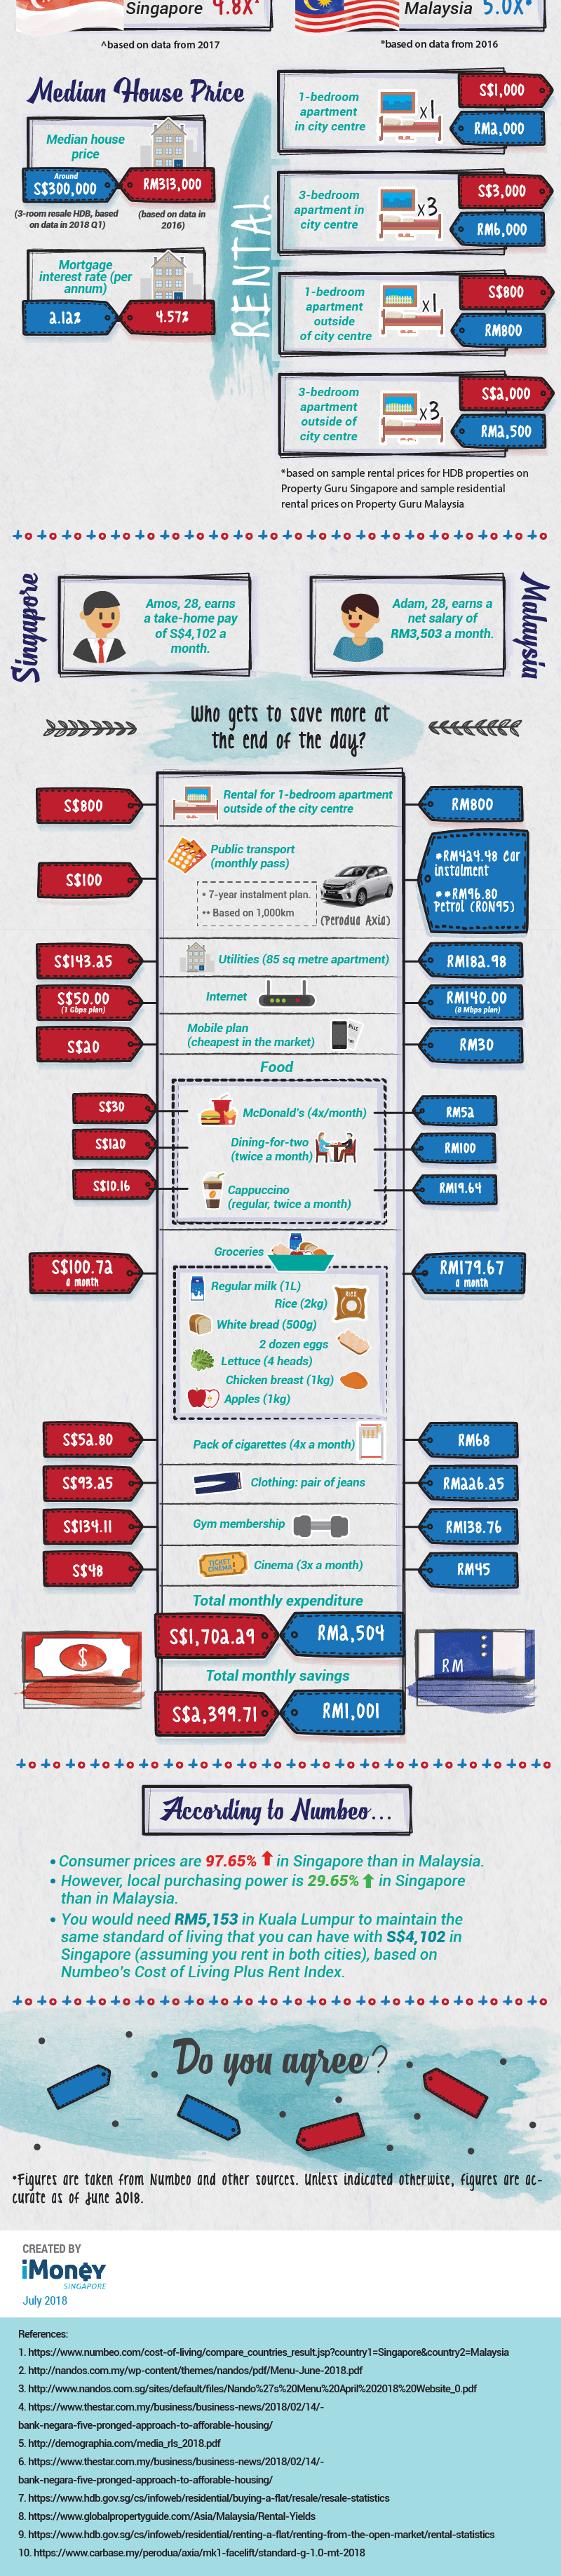 Malaysia-vs-Singapore-infographic-part-2.png